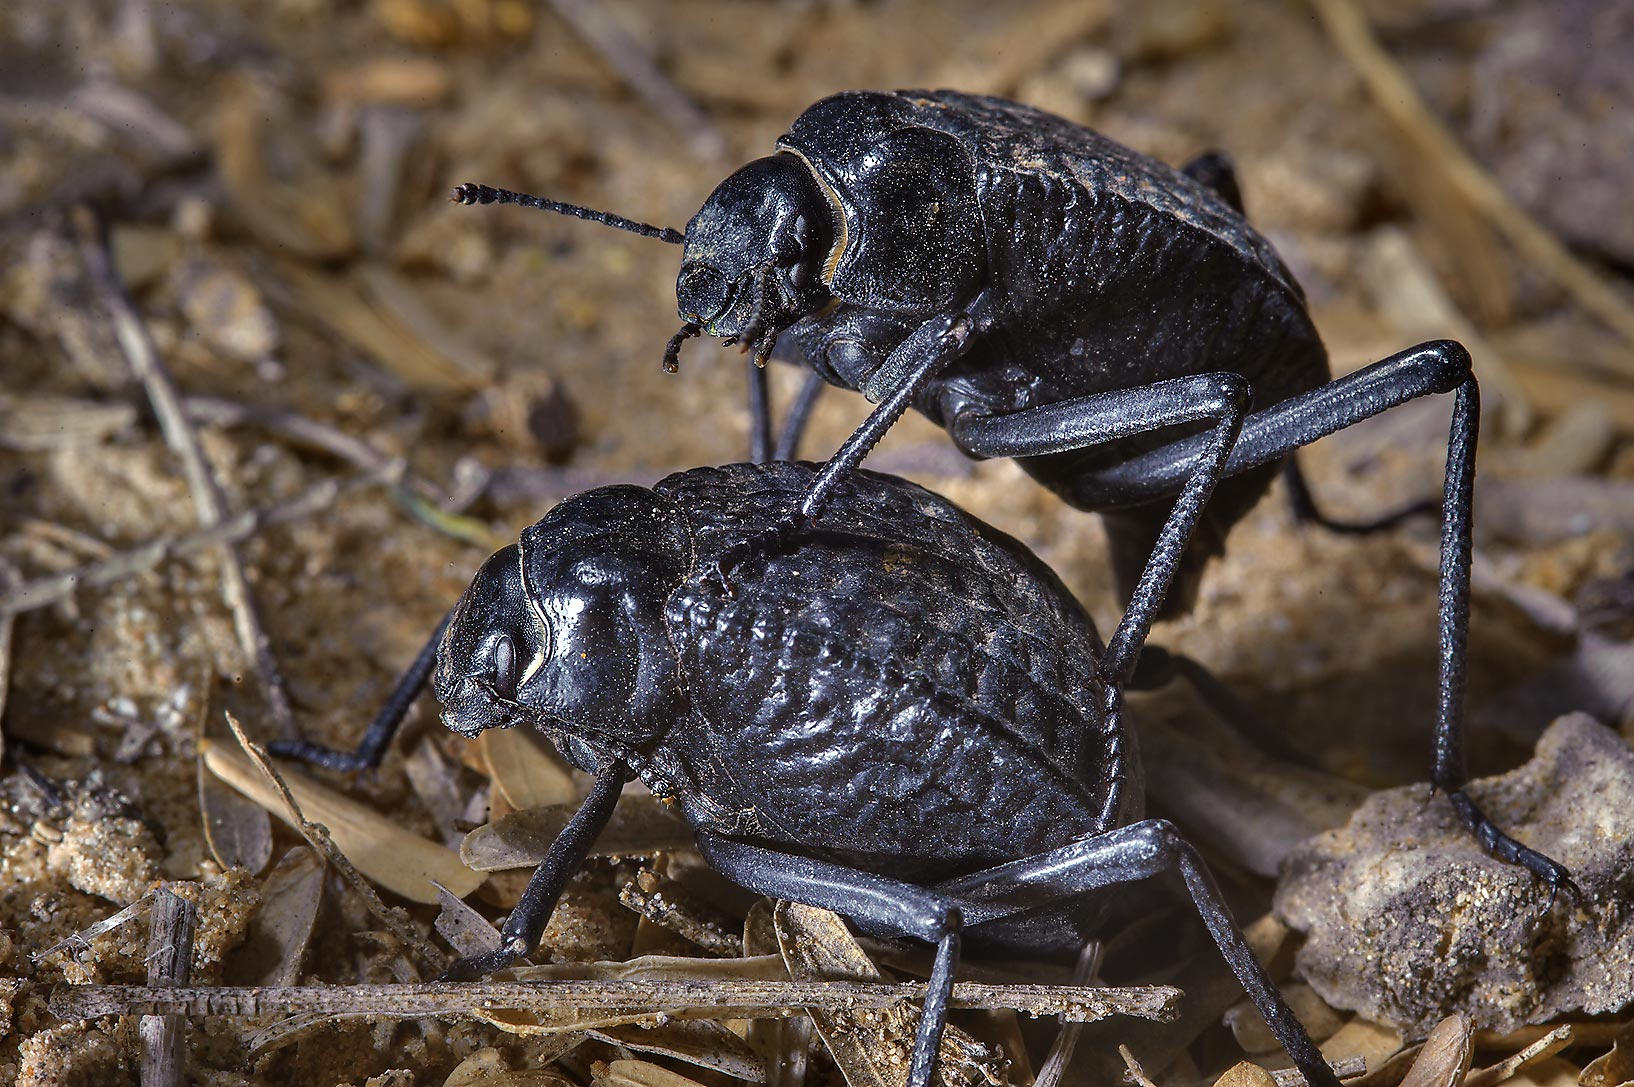 Mating pitted darkling beetles (Adesmia...in Trainah gardens. Southern Qatar